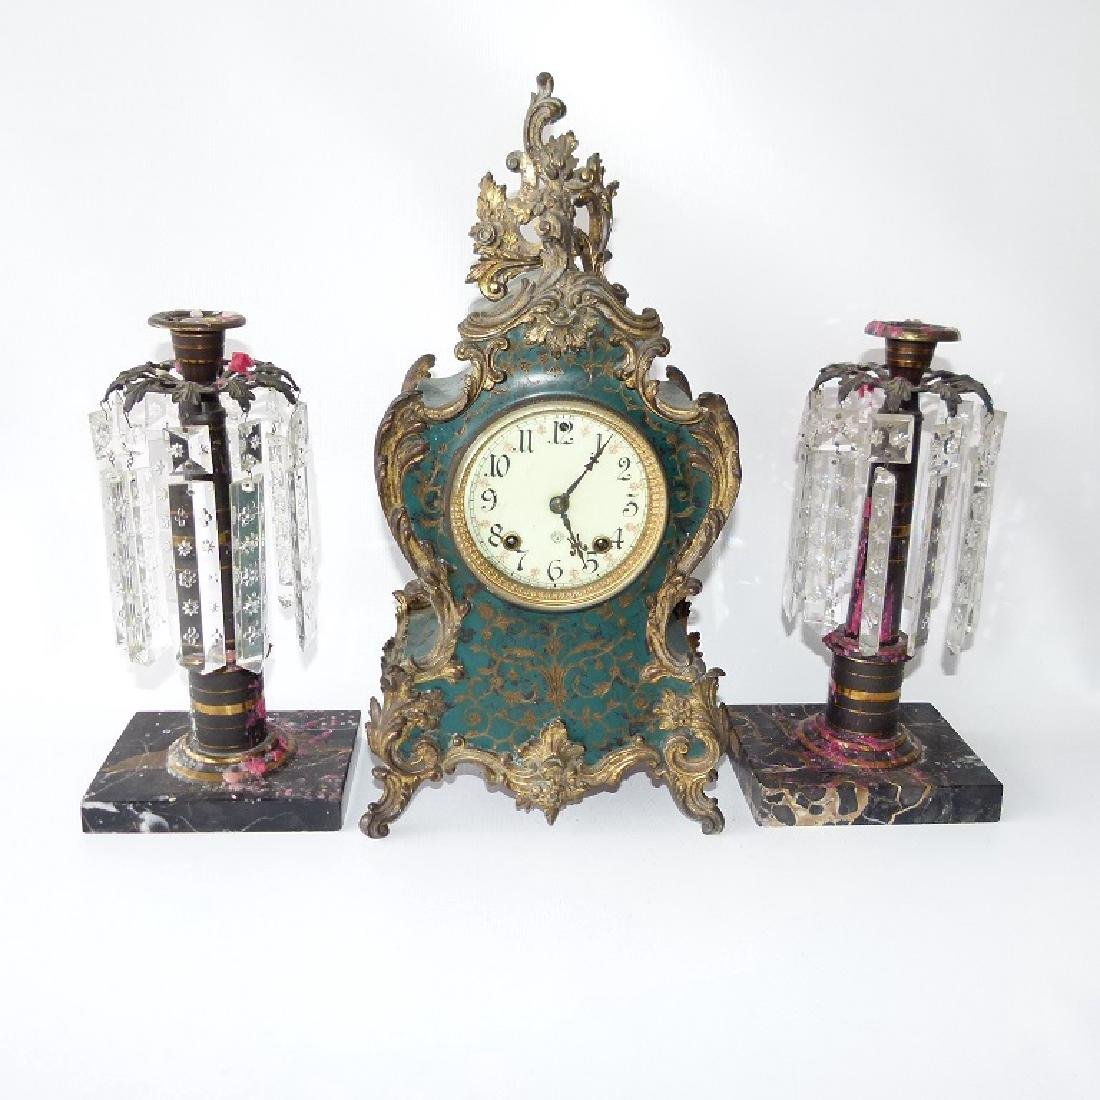 SET (3) ANSONIA MANTLE CLOCK W/ PR. EMPIRE MARBLE